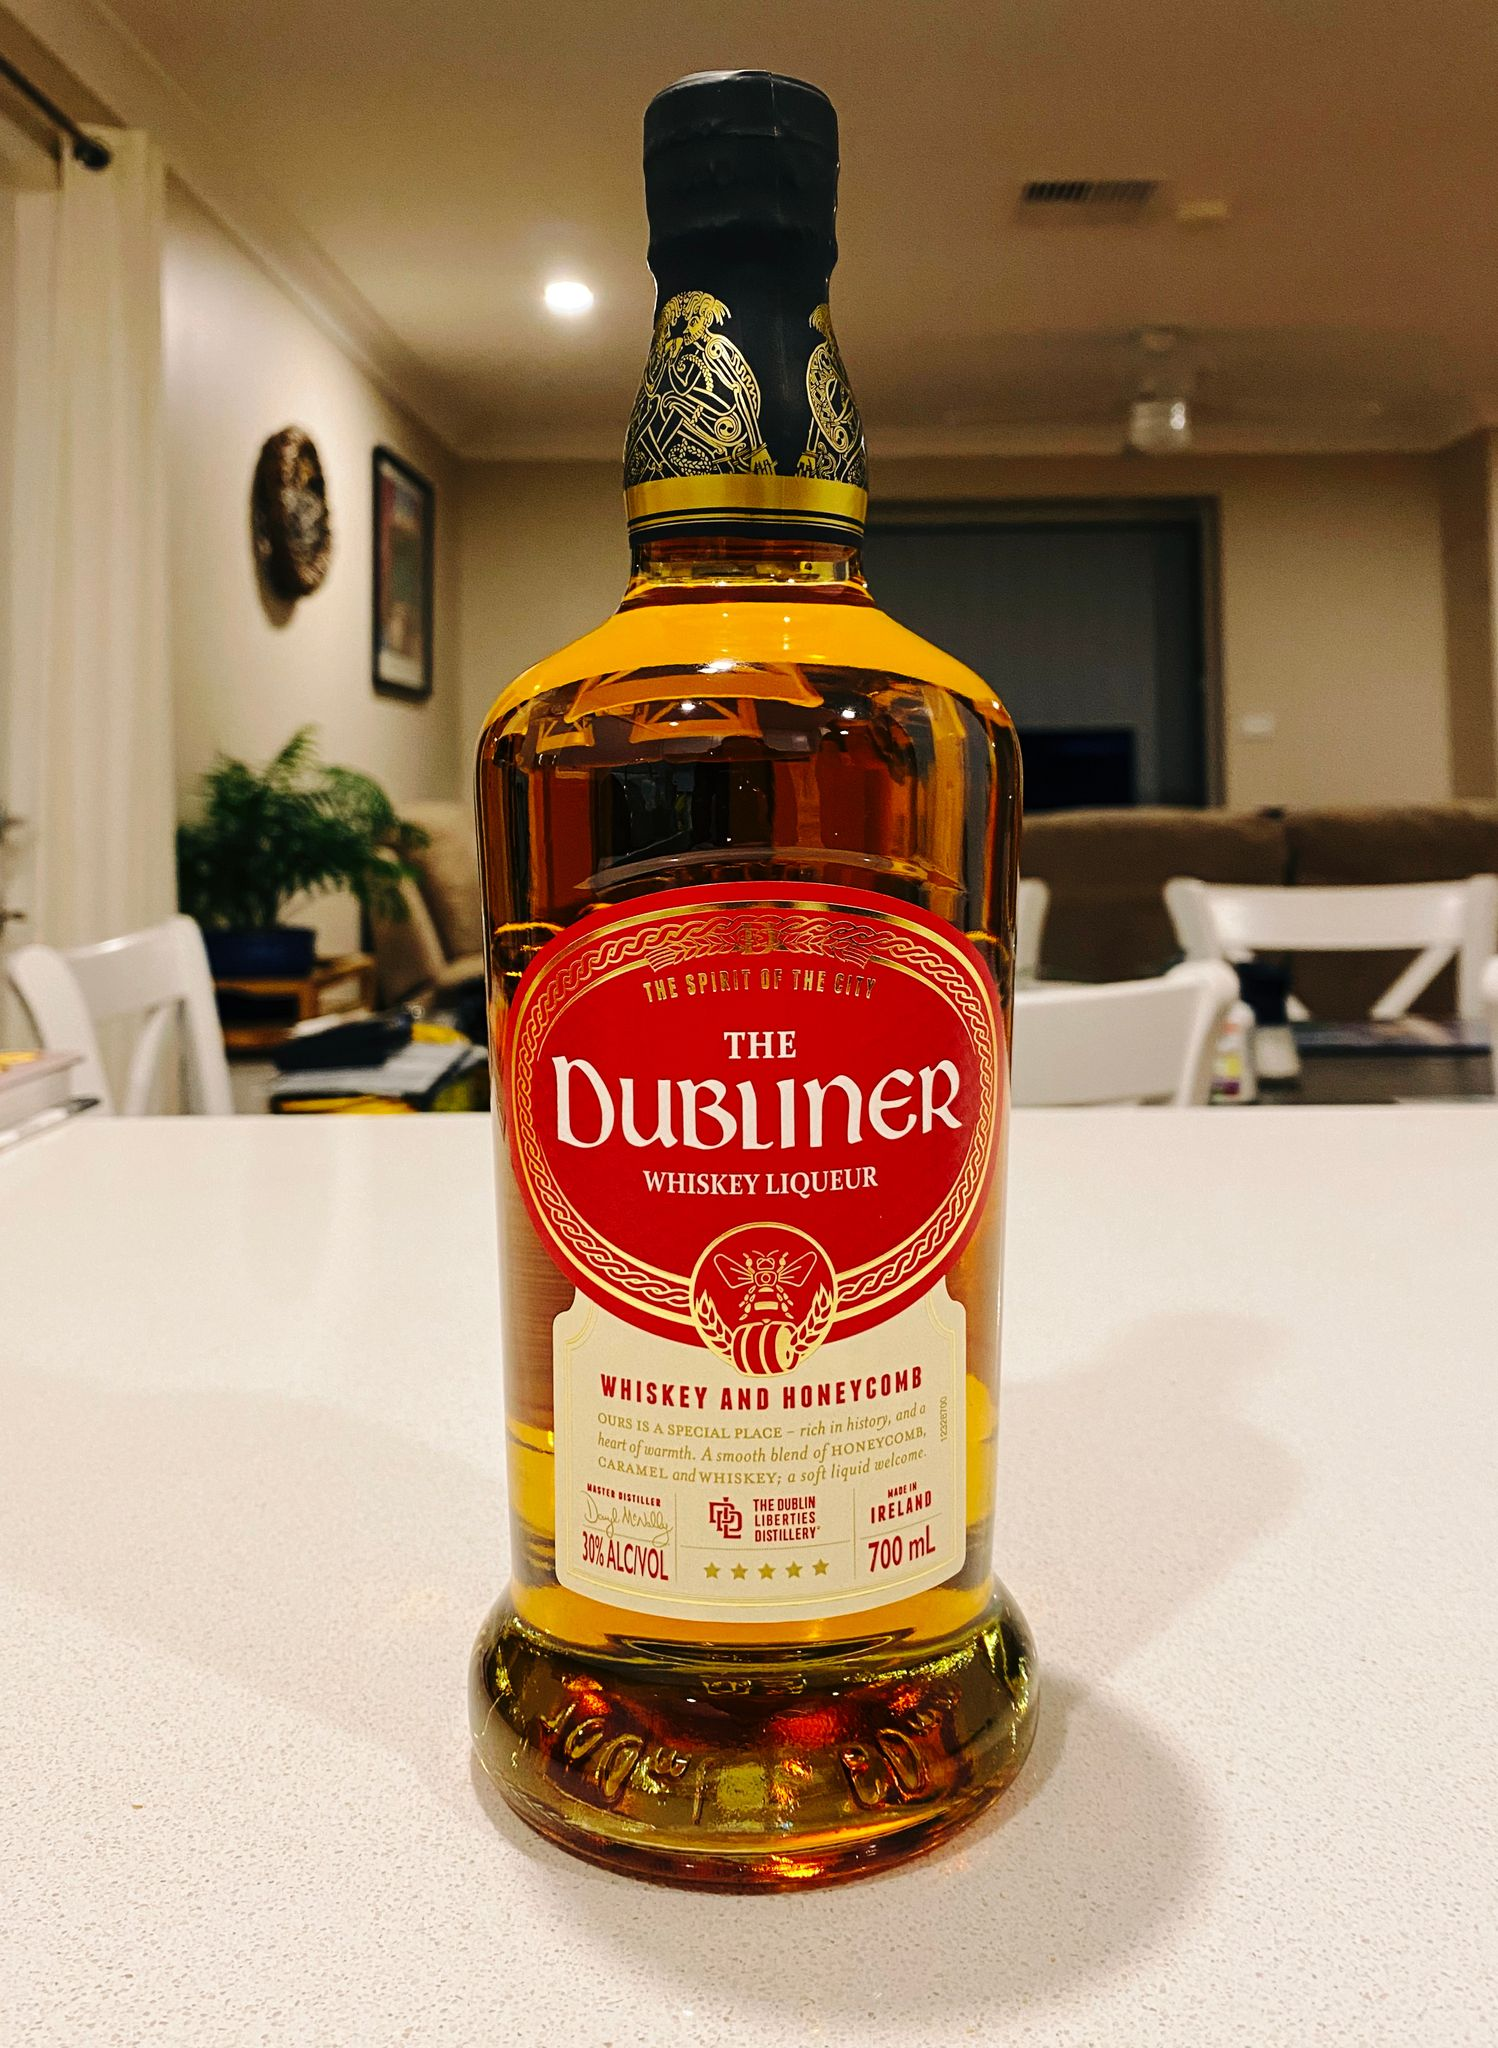 A photo of a bottle of whiskey liqueur.